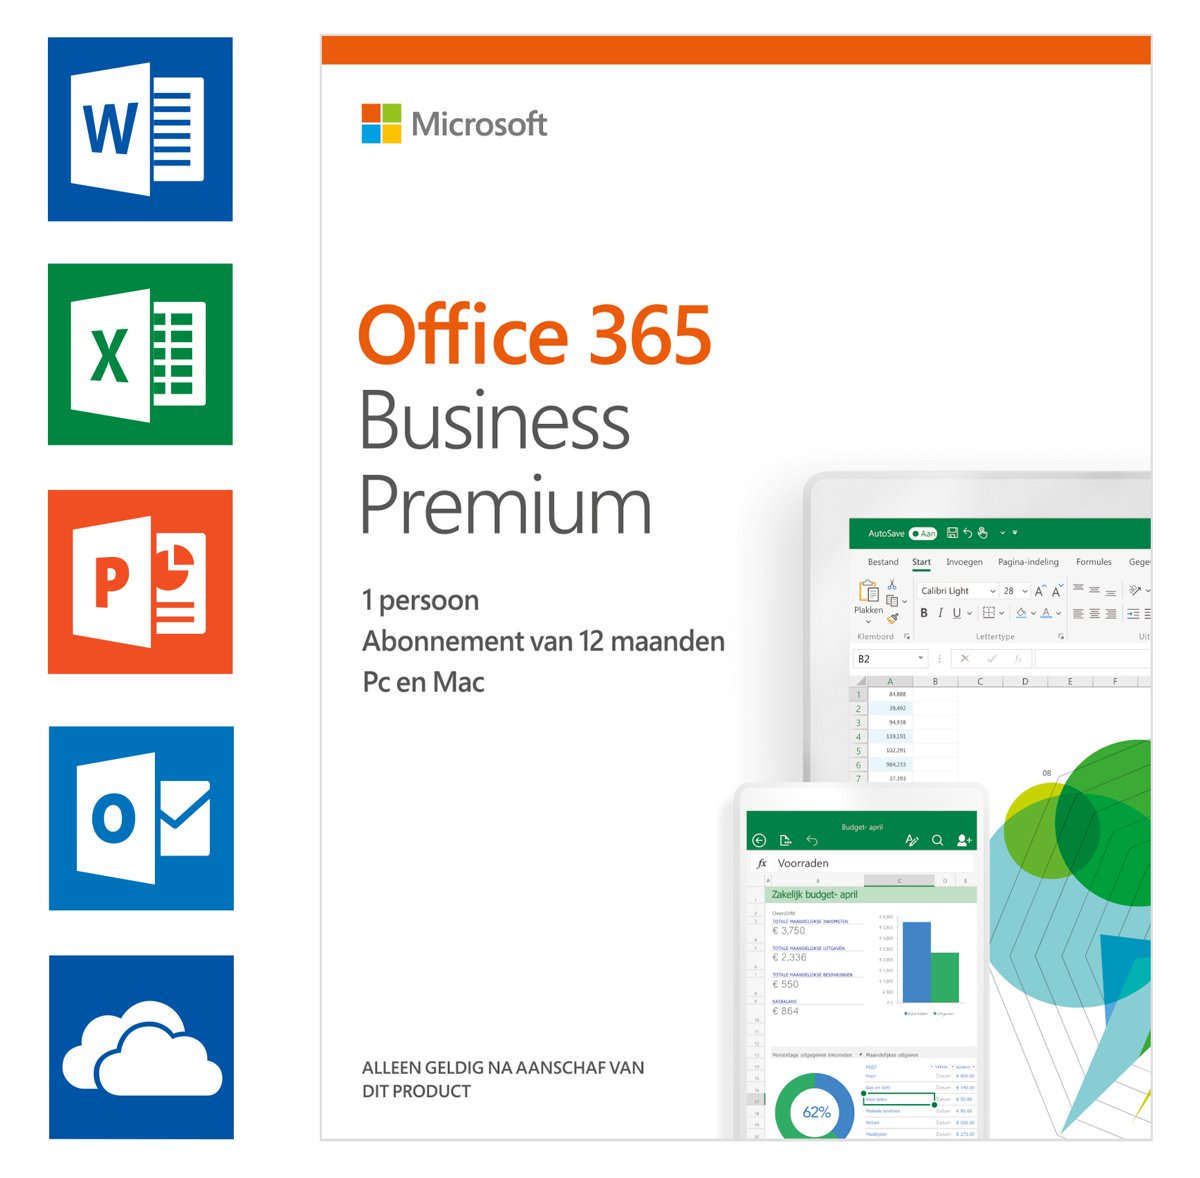 Microsoft Office 365 Business Premium - 1 jaar abonnement (download)